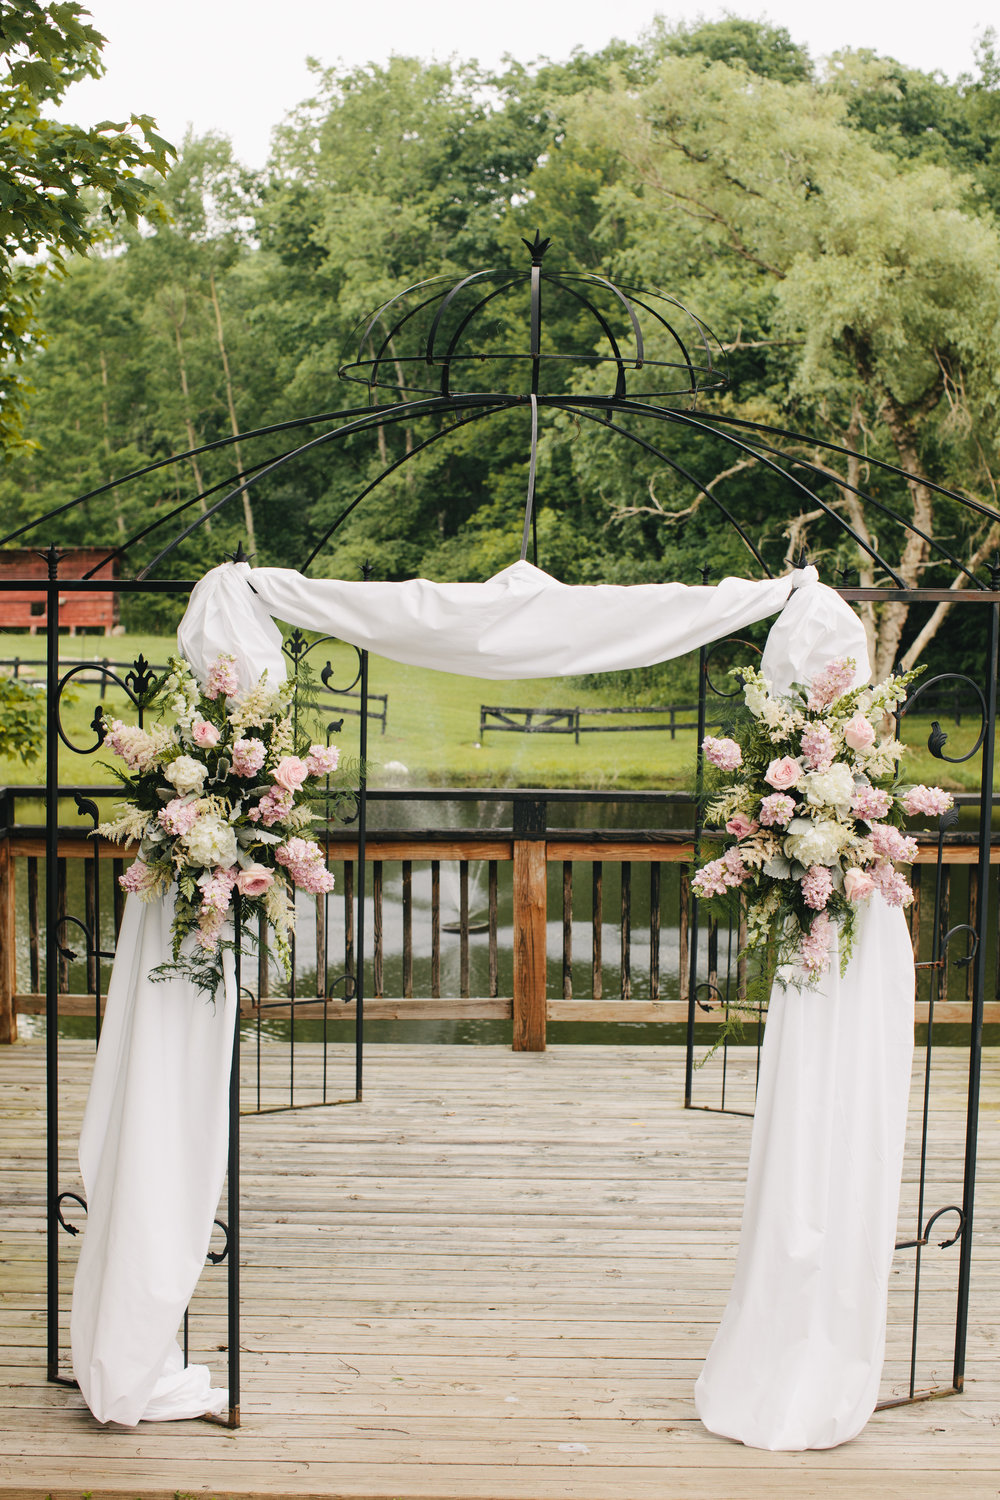 Floral Arbor (Photo Credit: Derek+Diane)